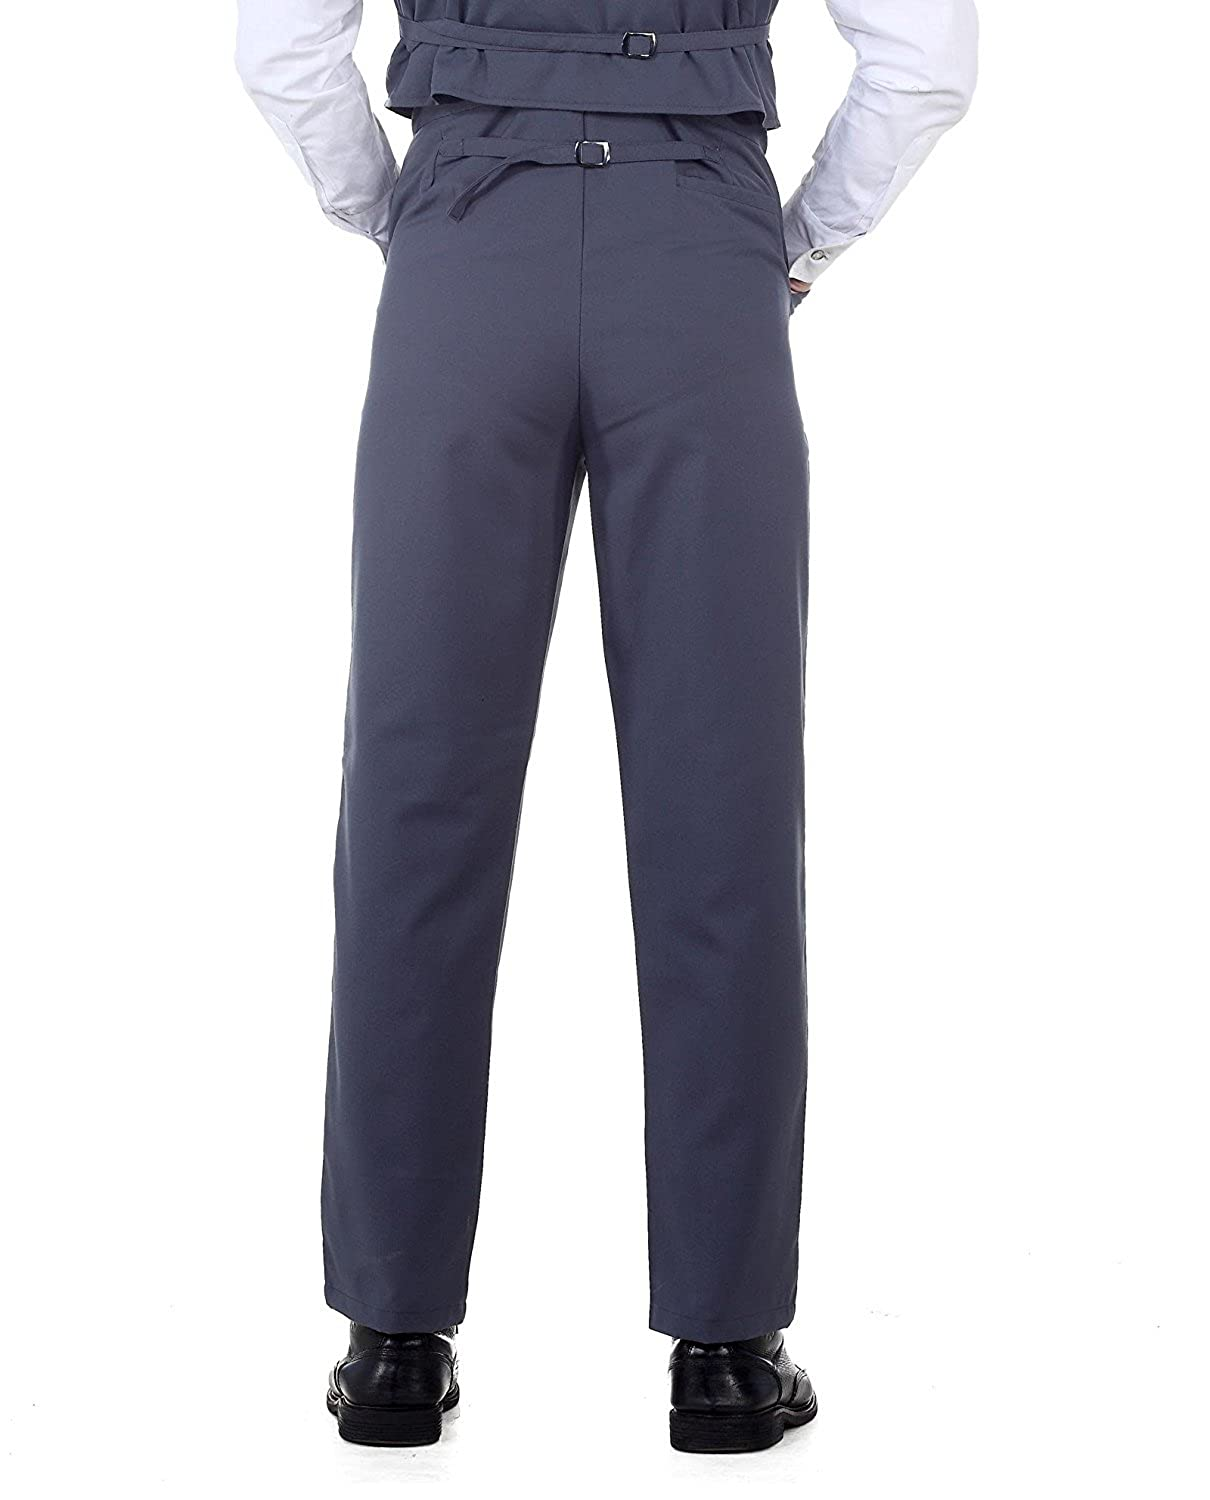 Edwardian Men's Fashion & Clothing Steampunk Victorian Costume Canvas Classic Pants Grey $37.95 AT vintagedancer.com